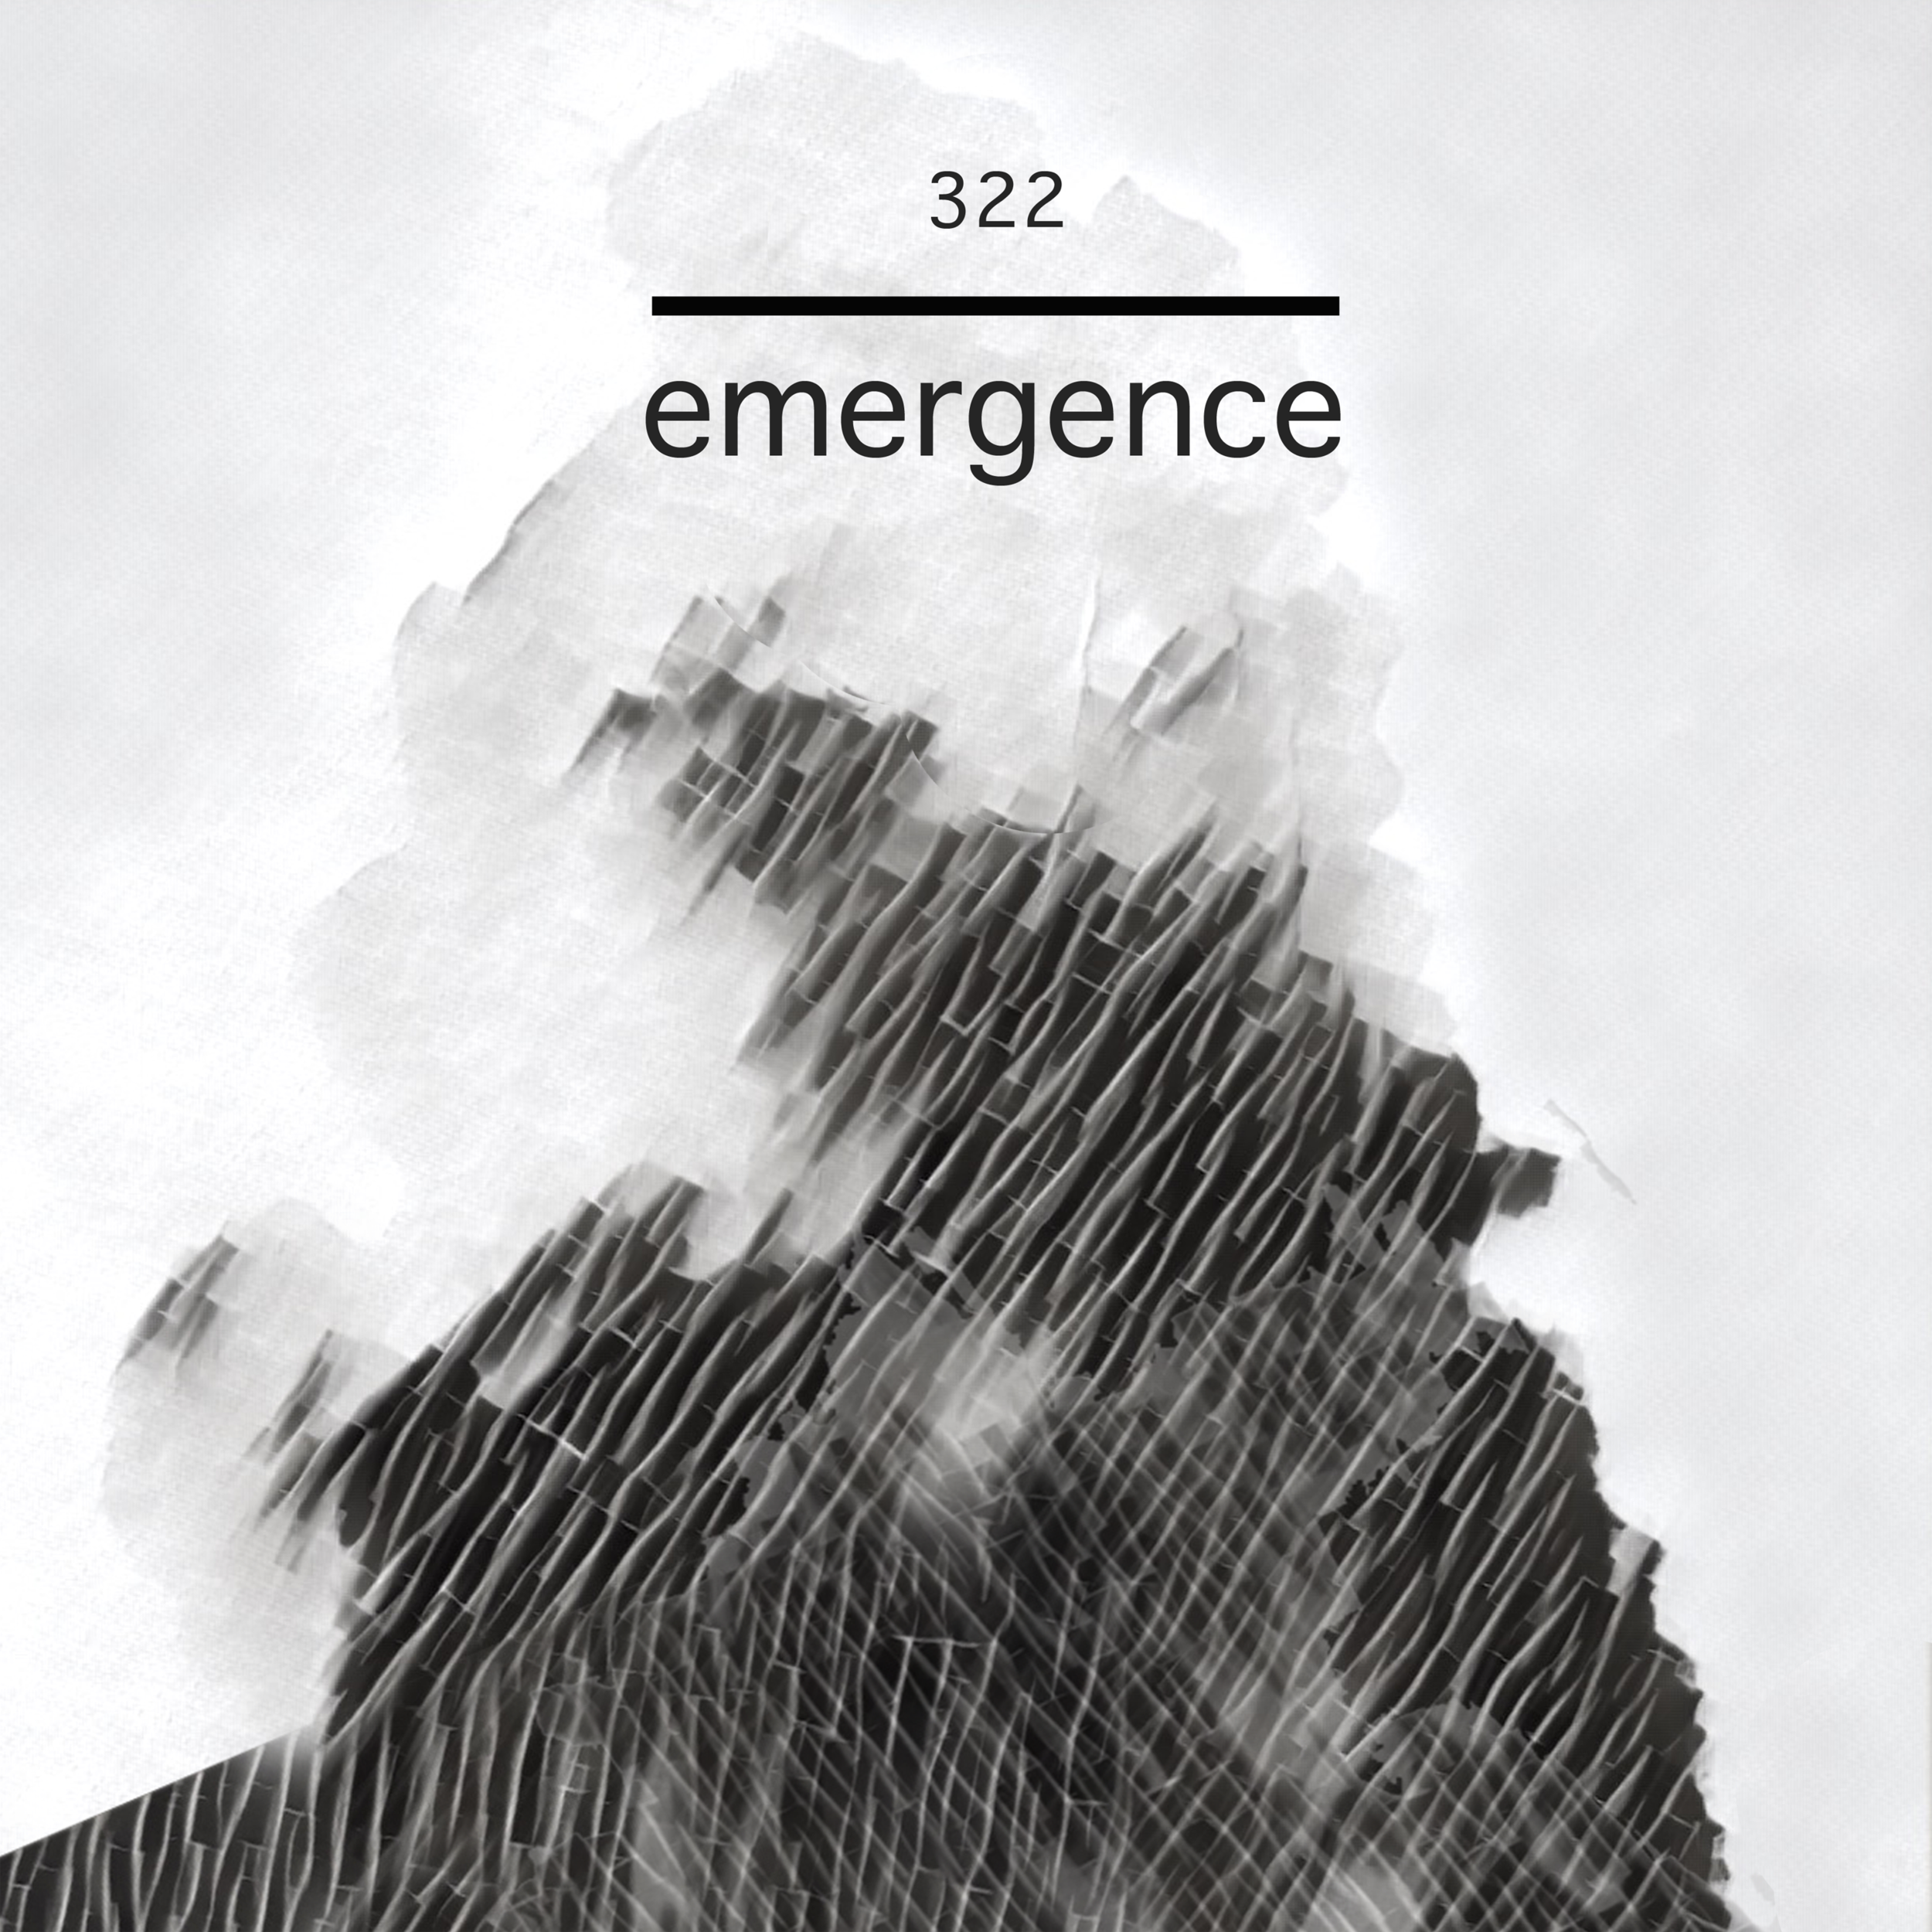 Emergence - First album released by the group. Released September 2017. Recorded at Pacific Lutheran University